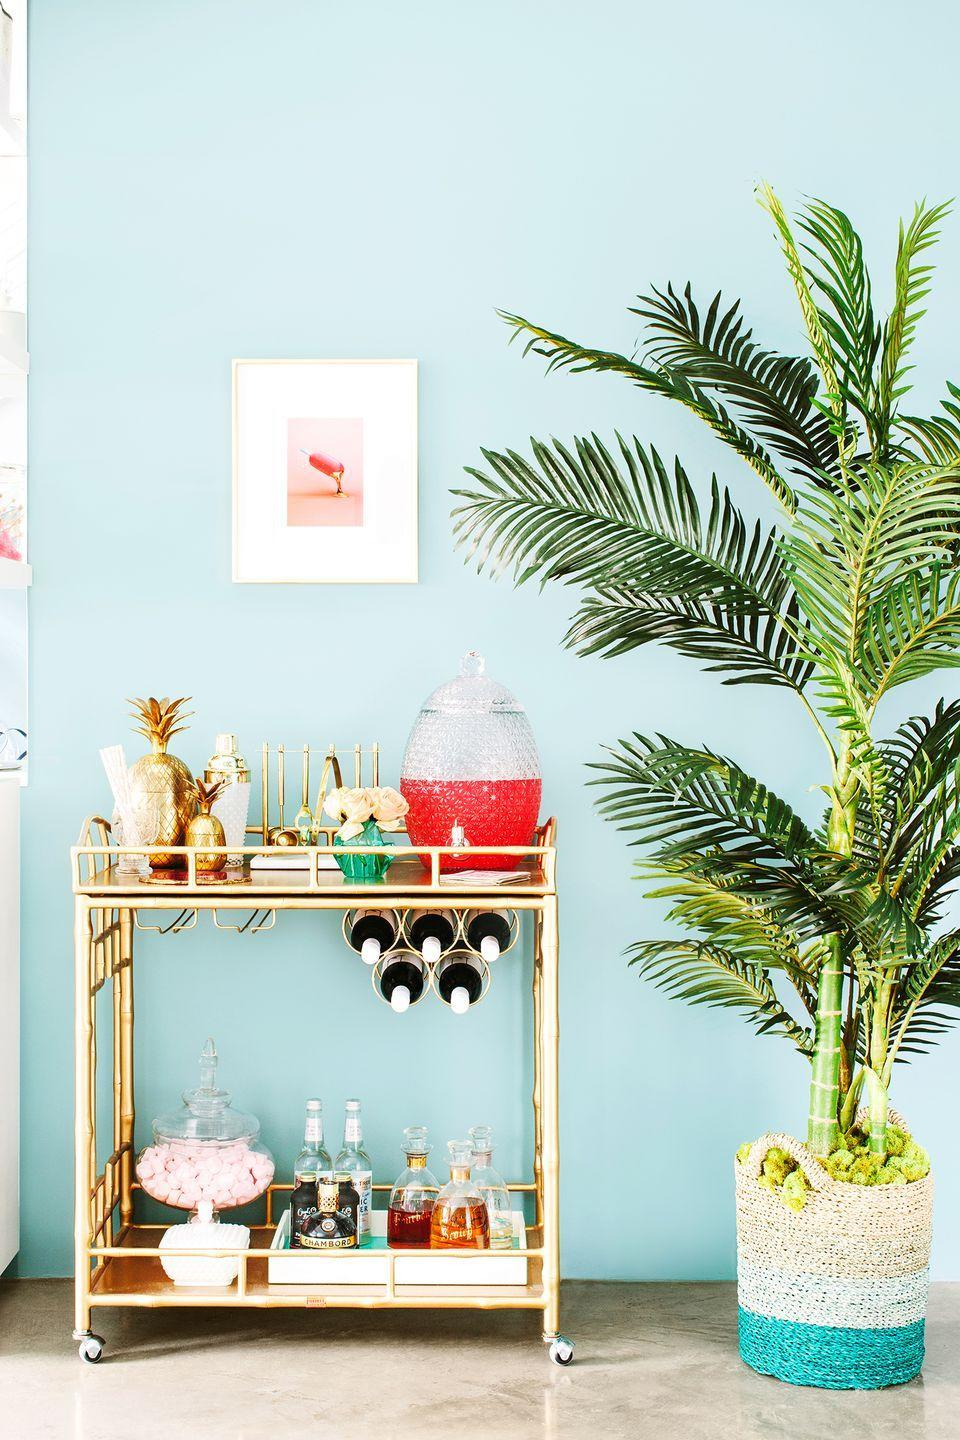 <p>Introduce a tropical vibe into your home by sprucing up your bar cart with beachy cocktails, gold decorative accents, and pretty florals. </p>